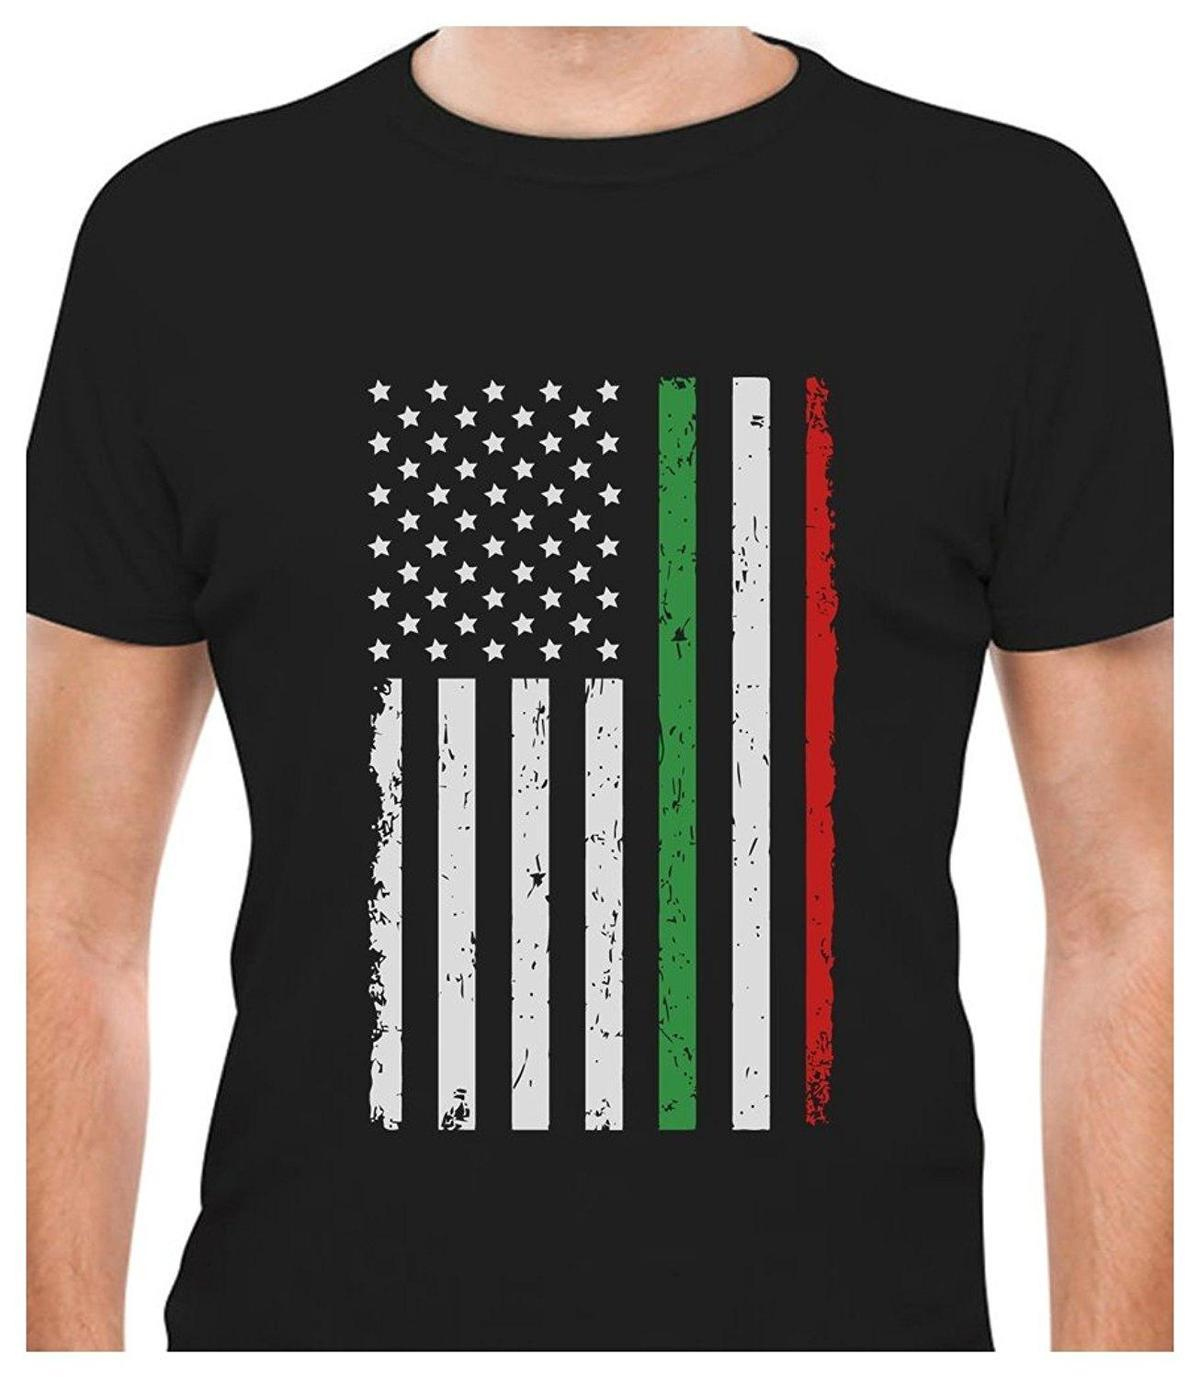 Printed Tee Shirt Design Big Distressed Italian American Flag Italy